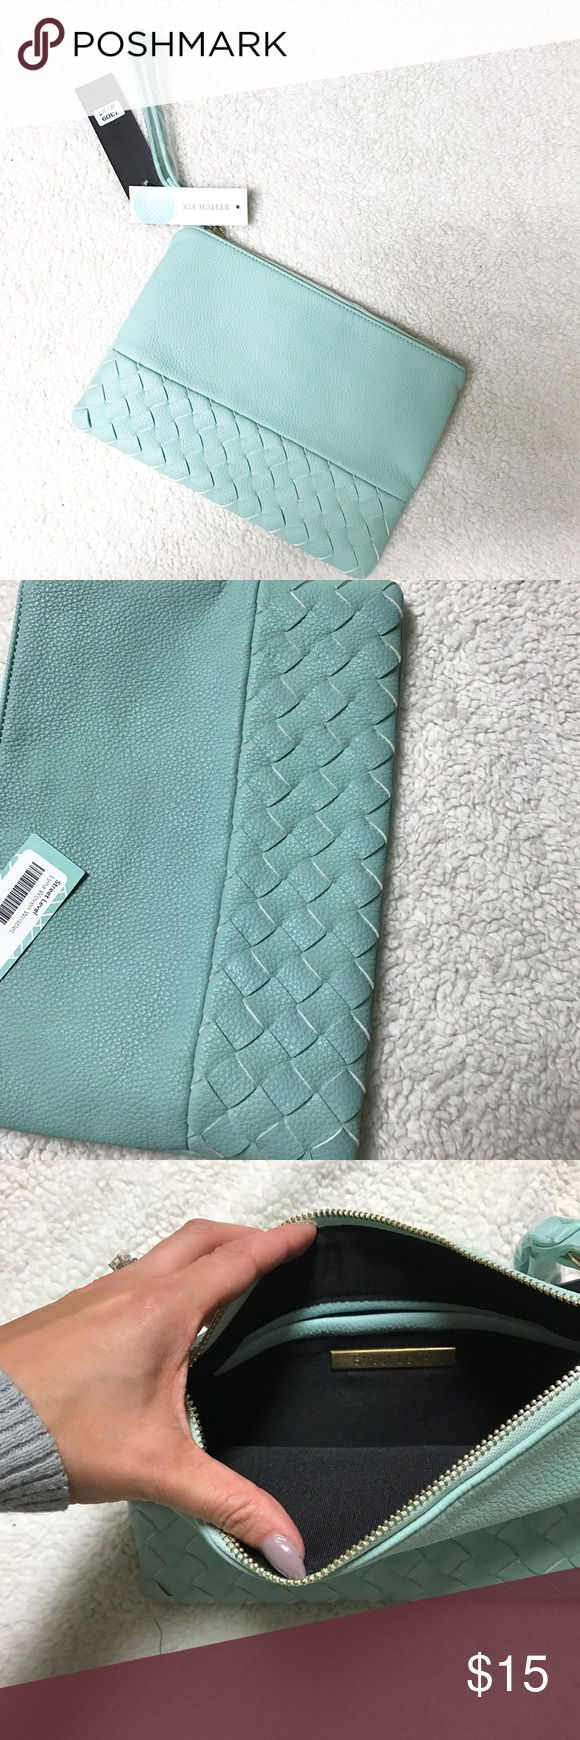 Stitch fix wristlet Never used. Bags Clutches & Wristlets